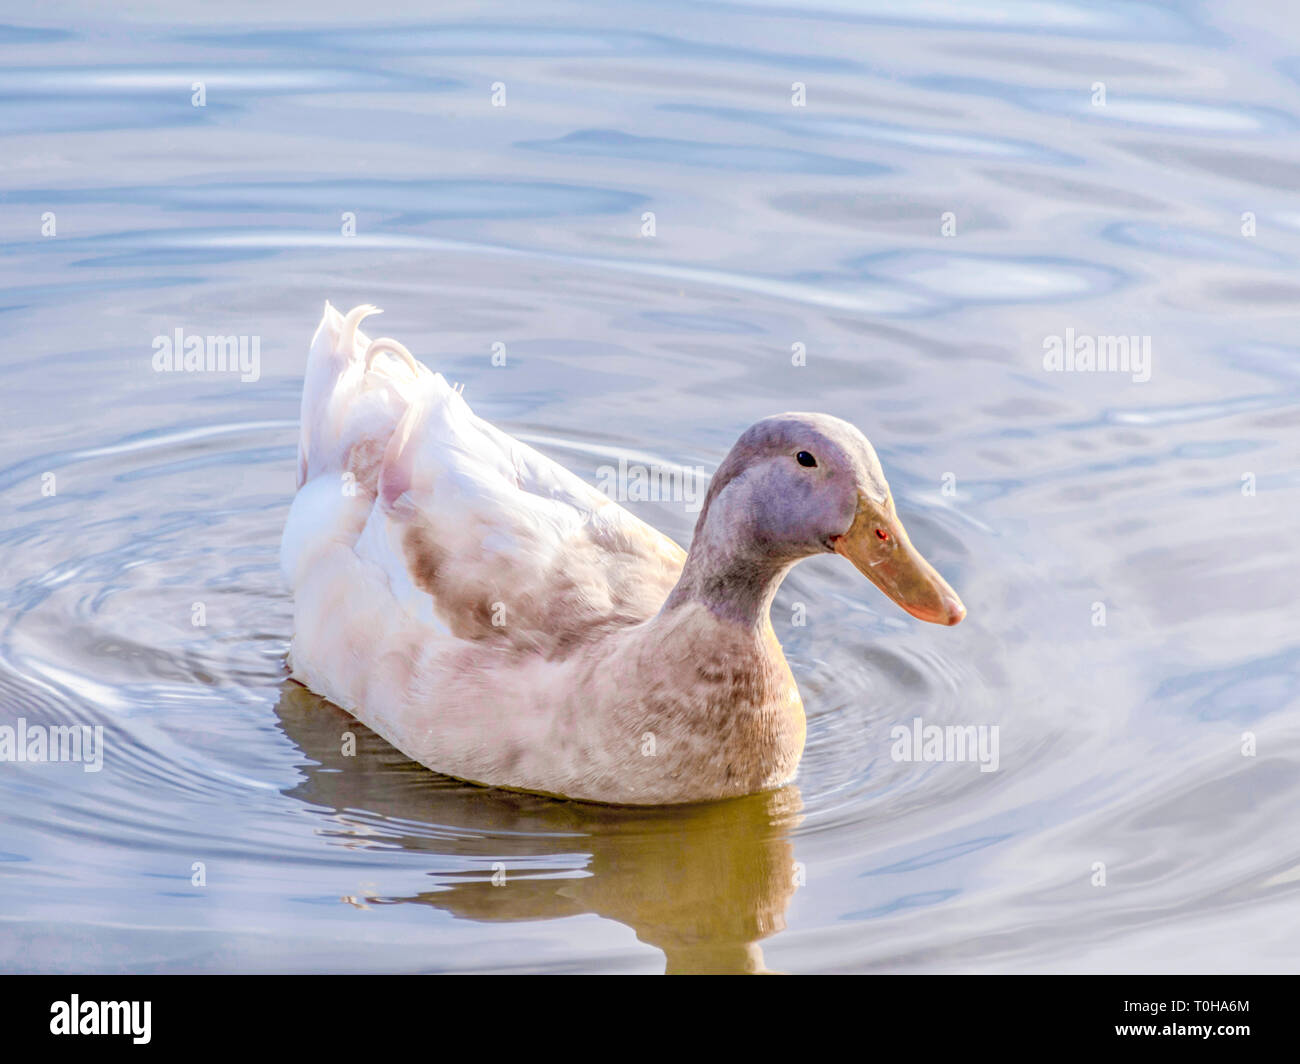 Duck in a Pond - Stock Image